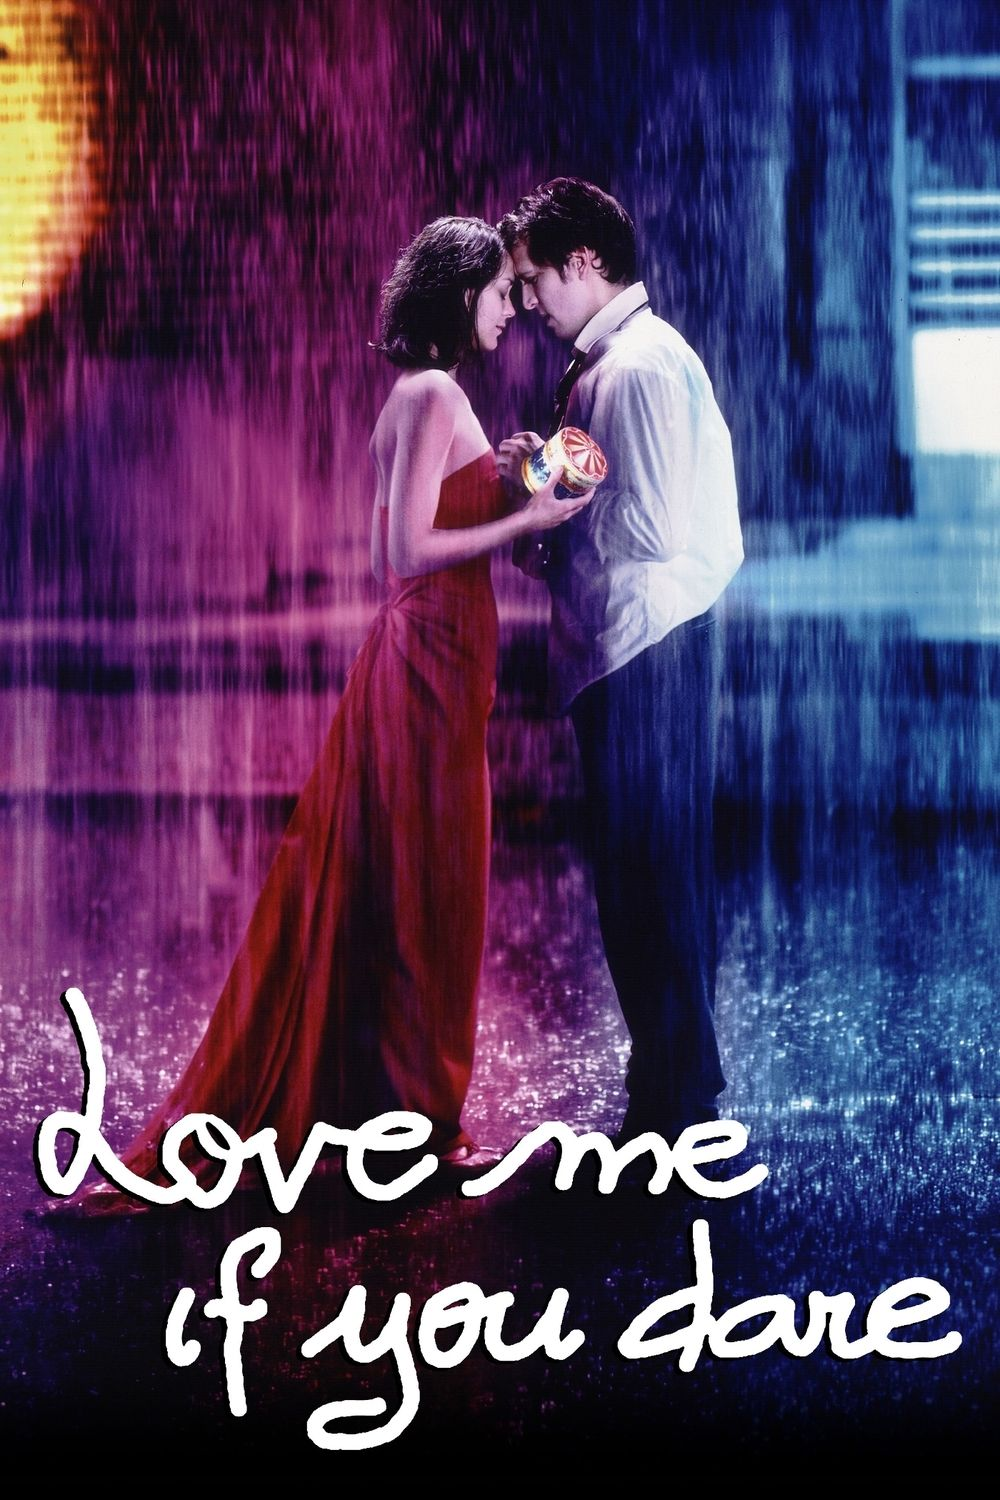 click image to watch Love Me If You Dare (2003) (With